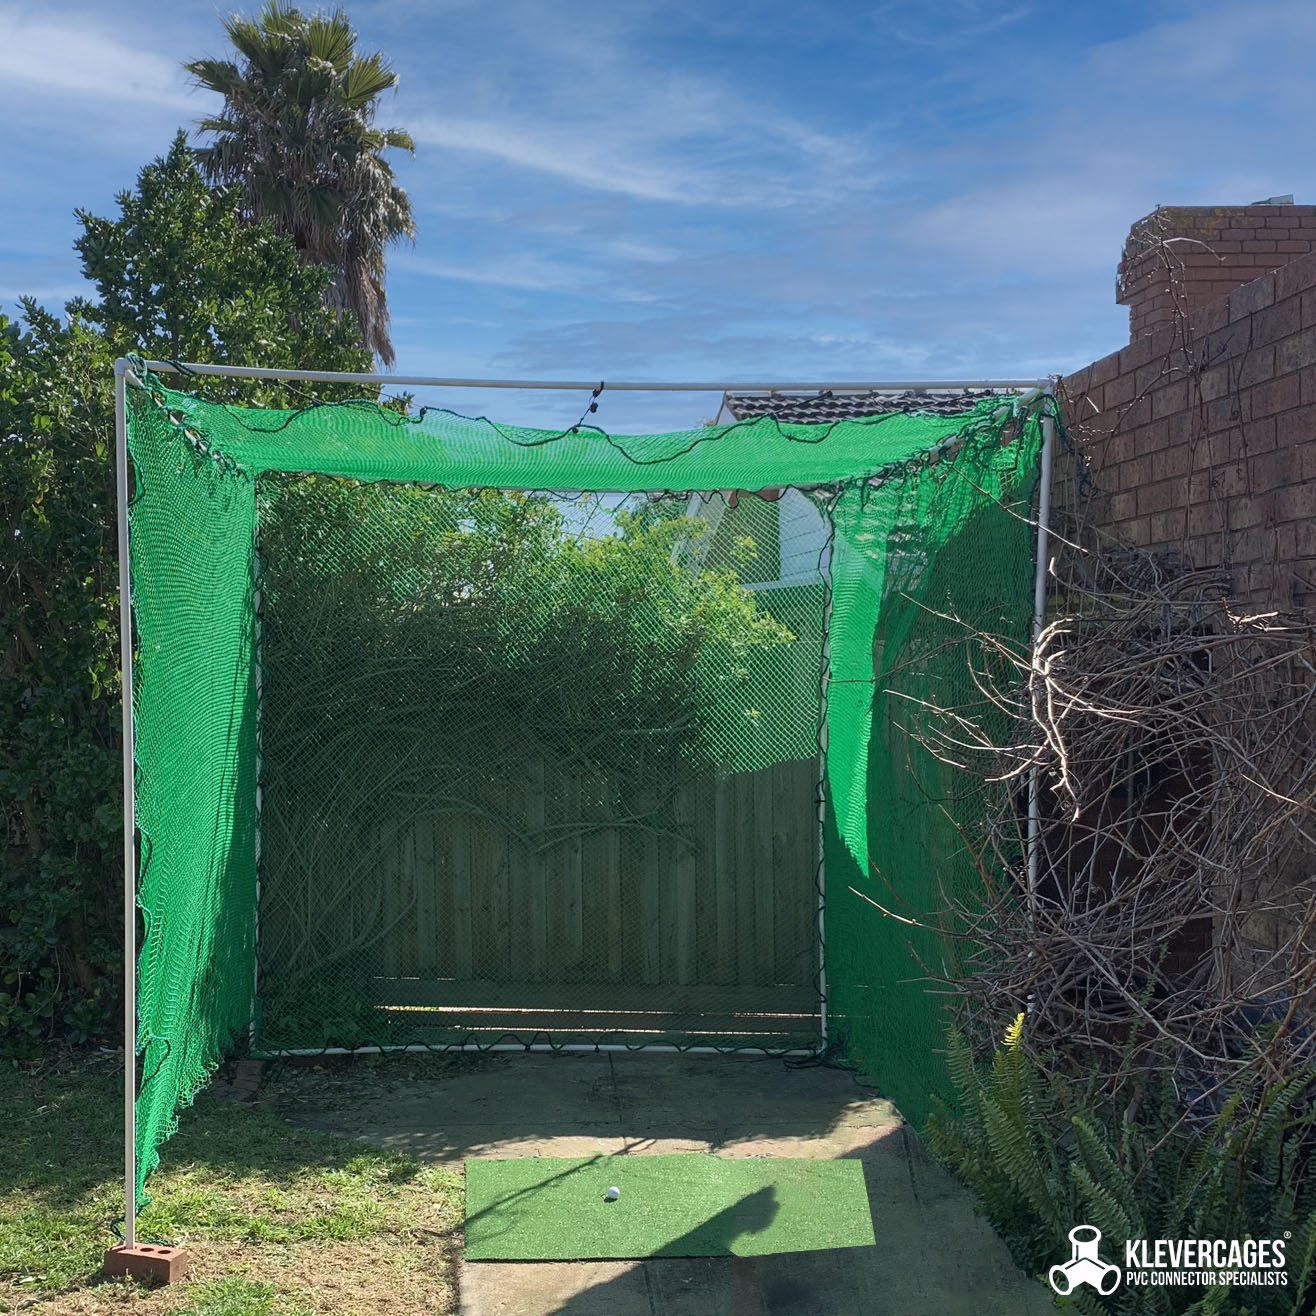 golf practice net built with PVC connectors and pipe from Klever Cages